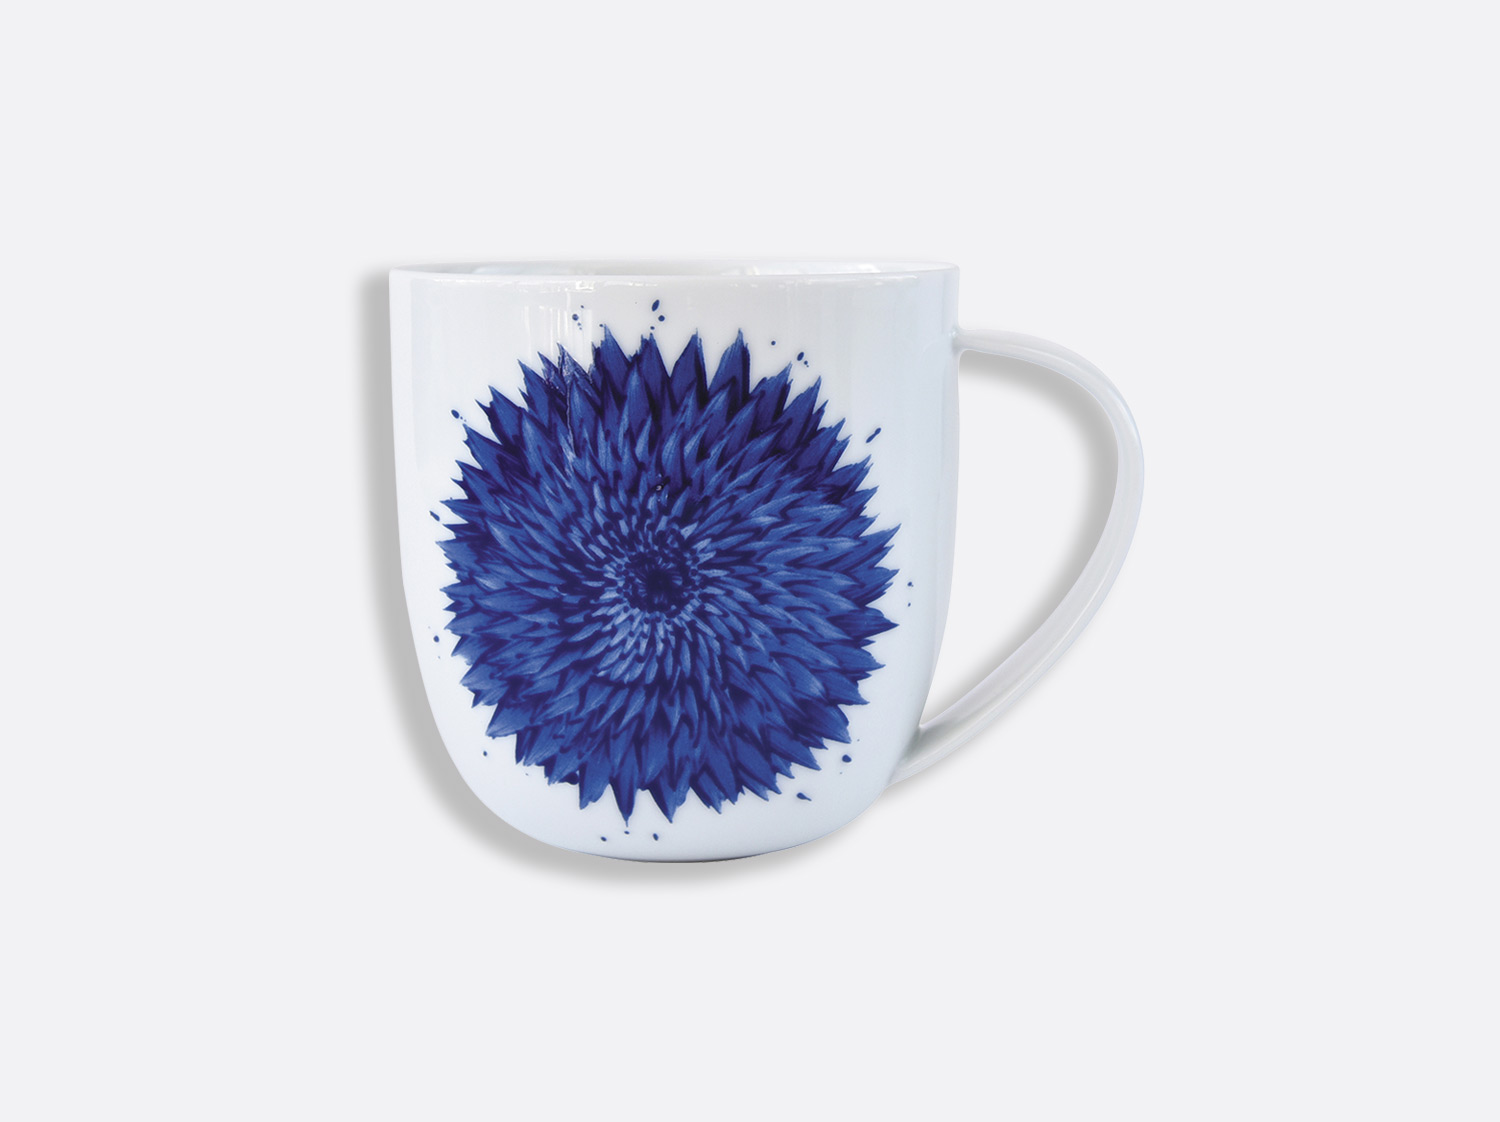 Mug Bleu 35 cl en porcelaine de la collection IN BLOOM - Zemer Peled Bernardaud